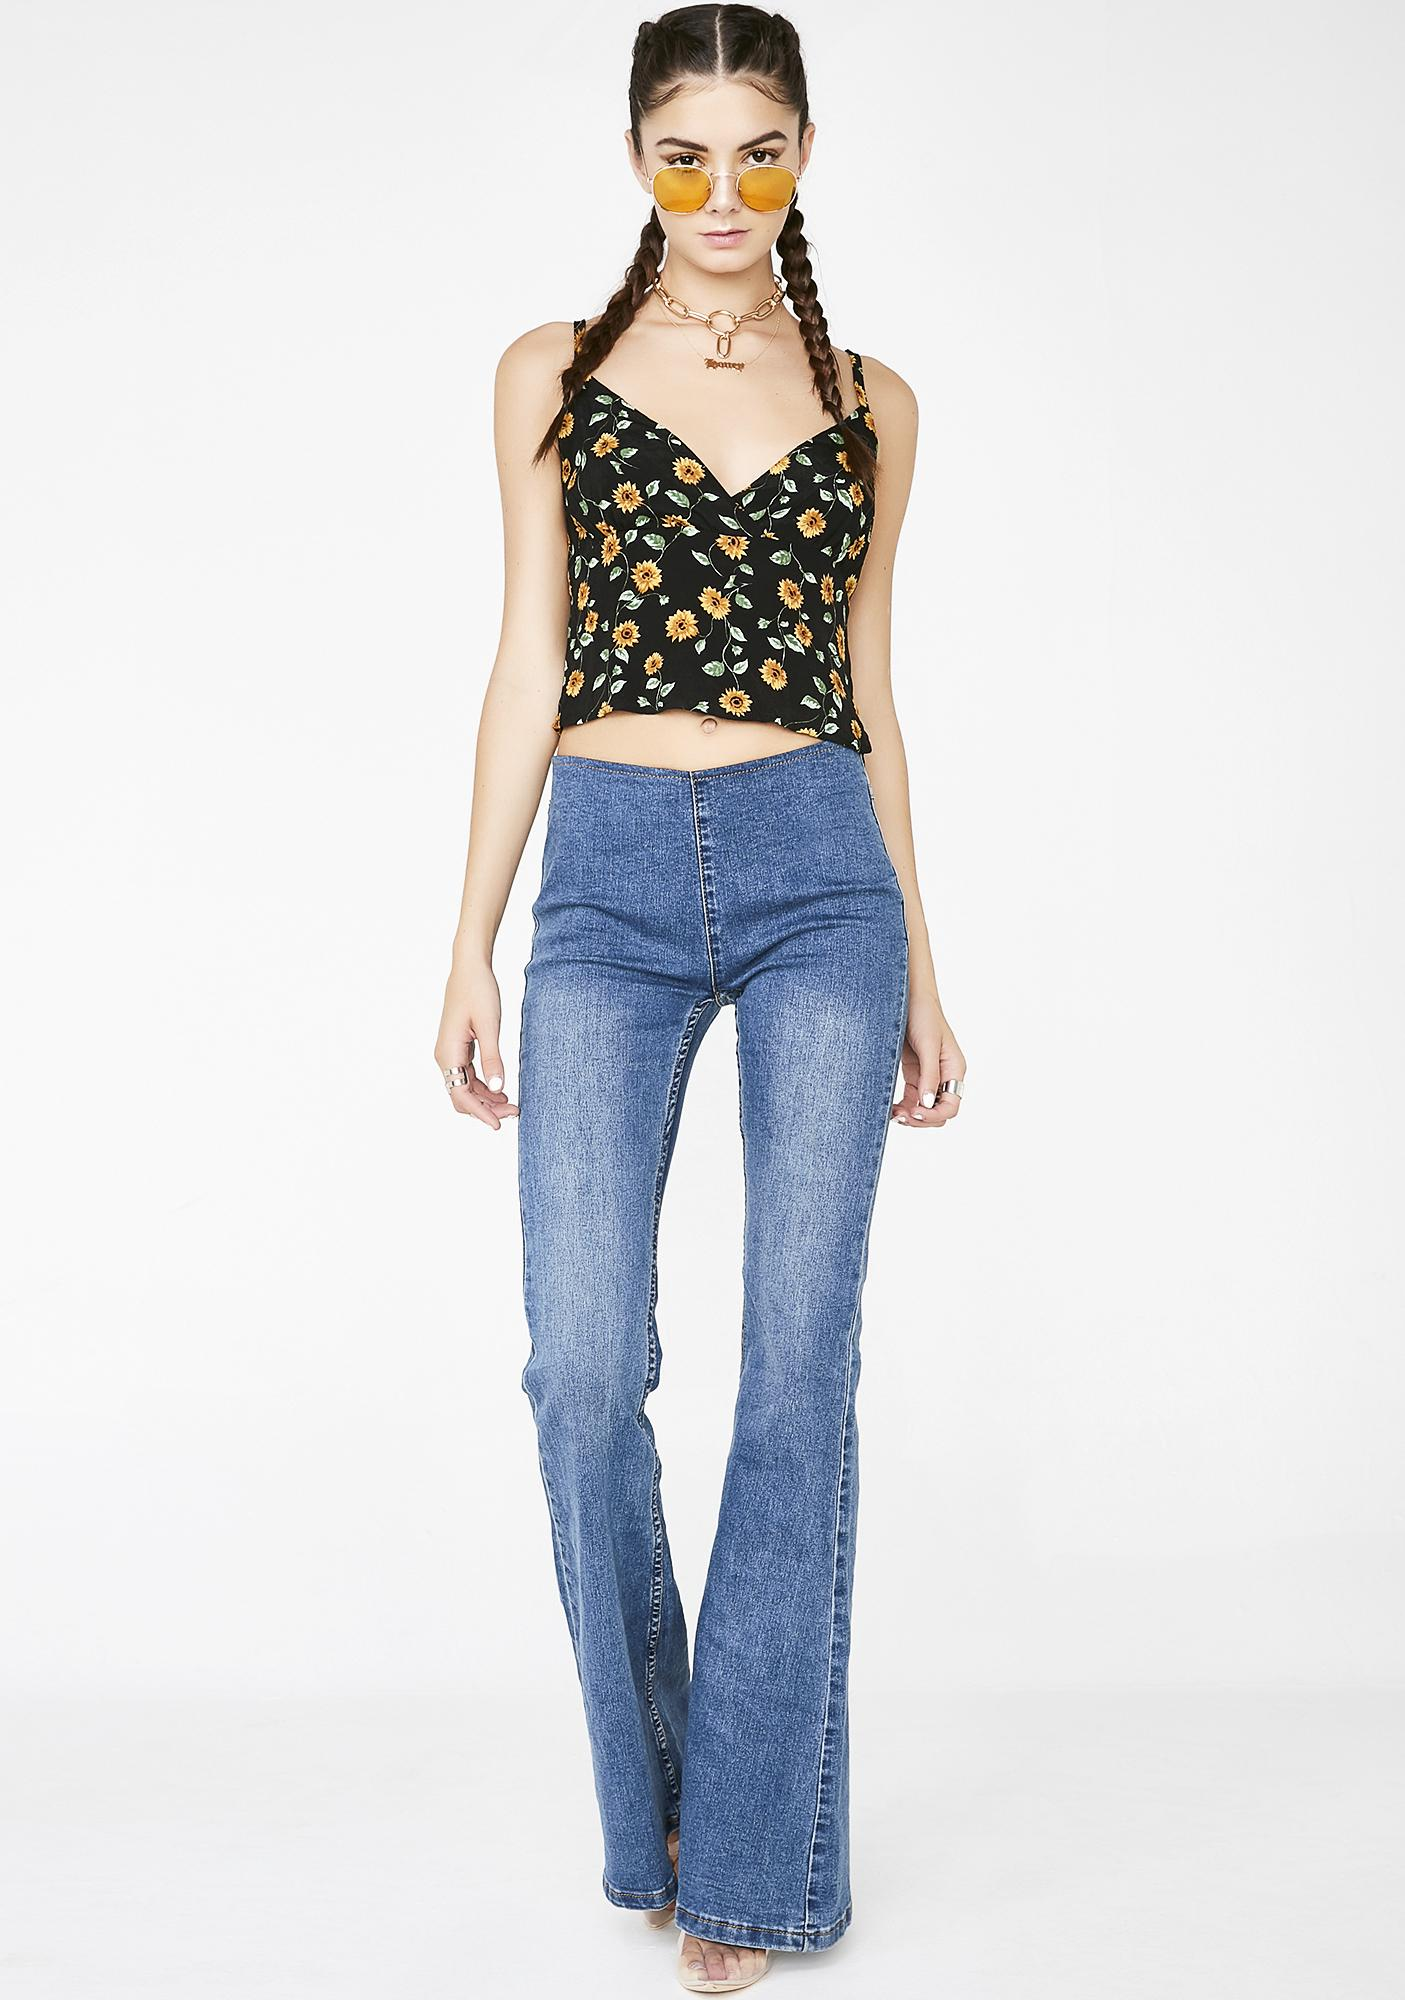 Wicked Sunshiny Day Crop Top